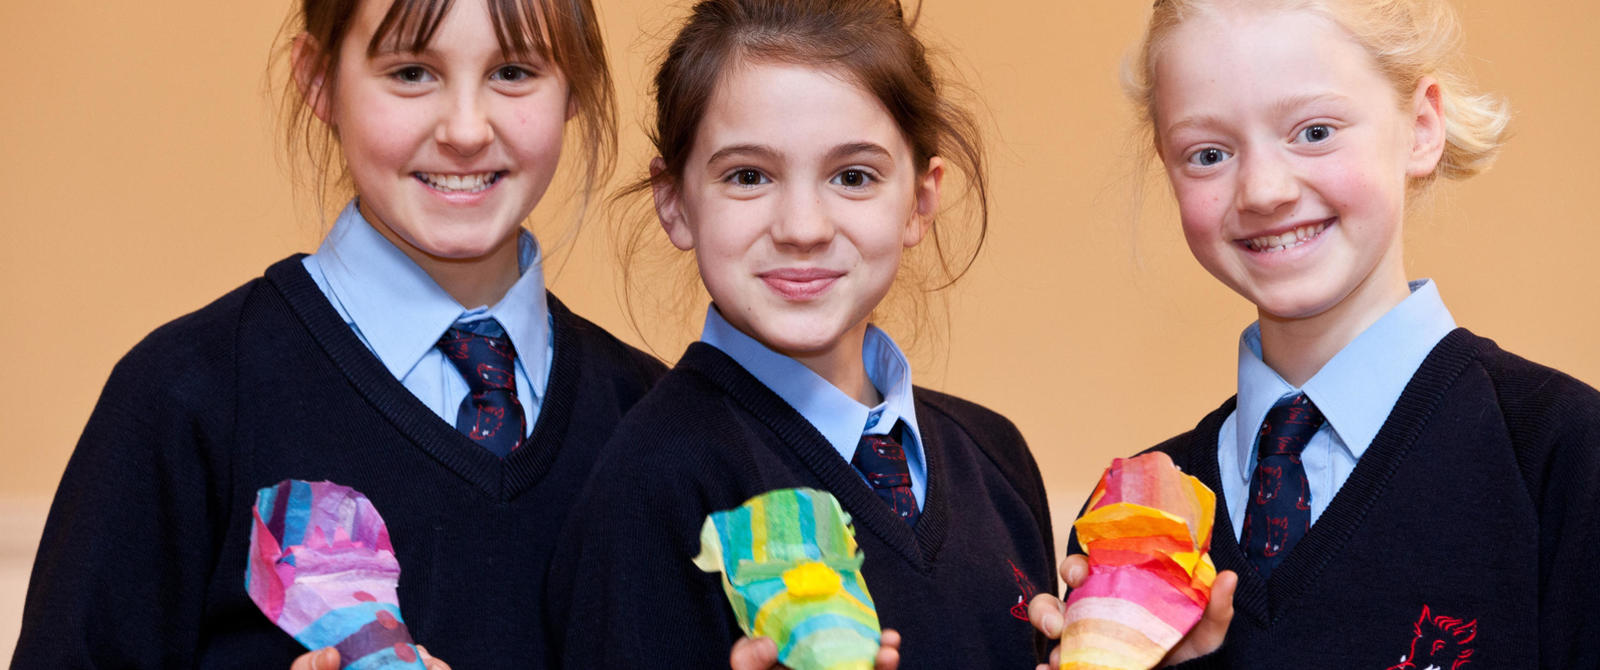 Image: Pupils taking part in a craft activity